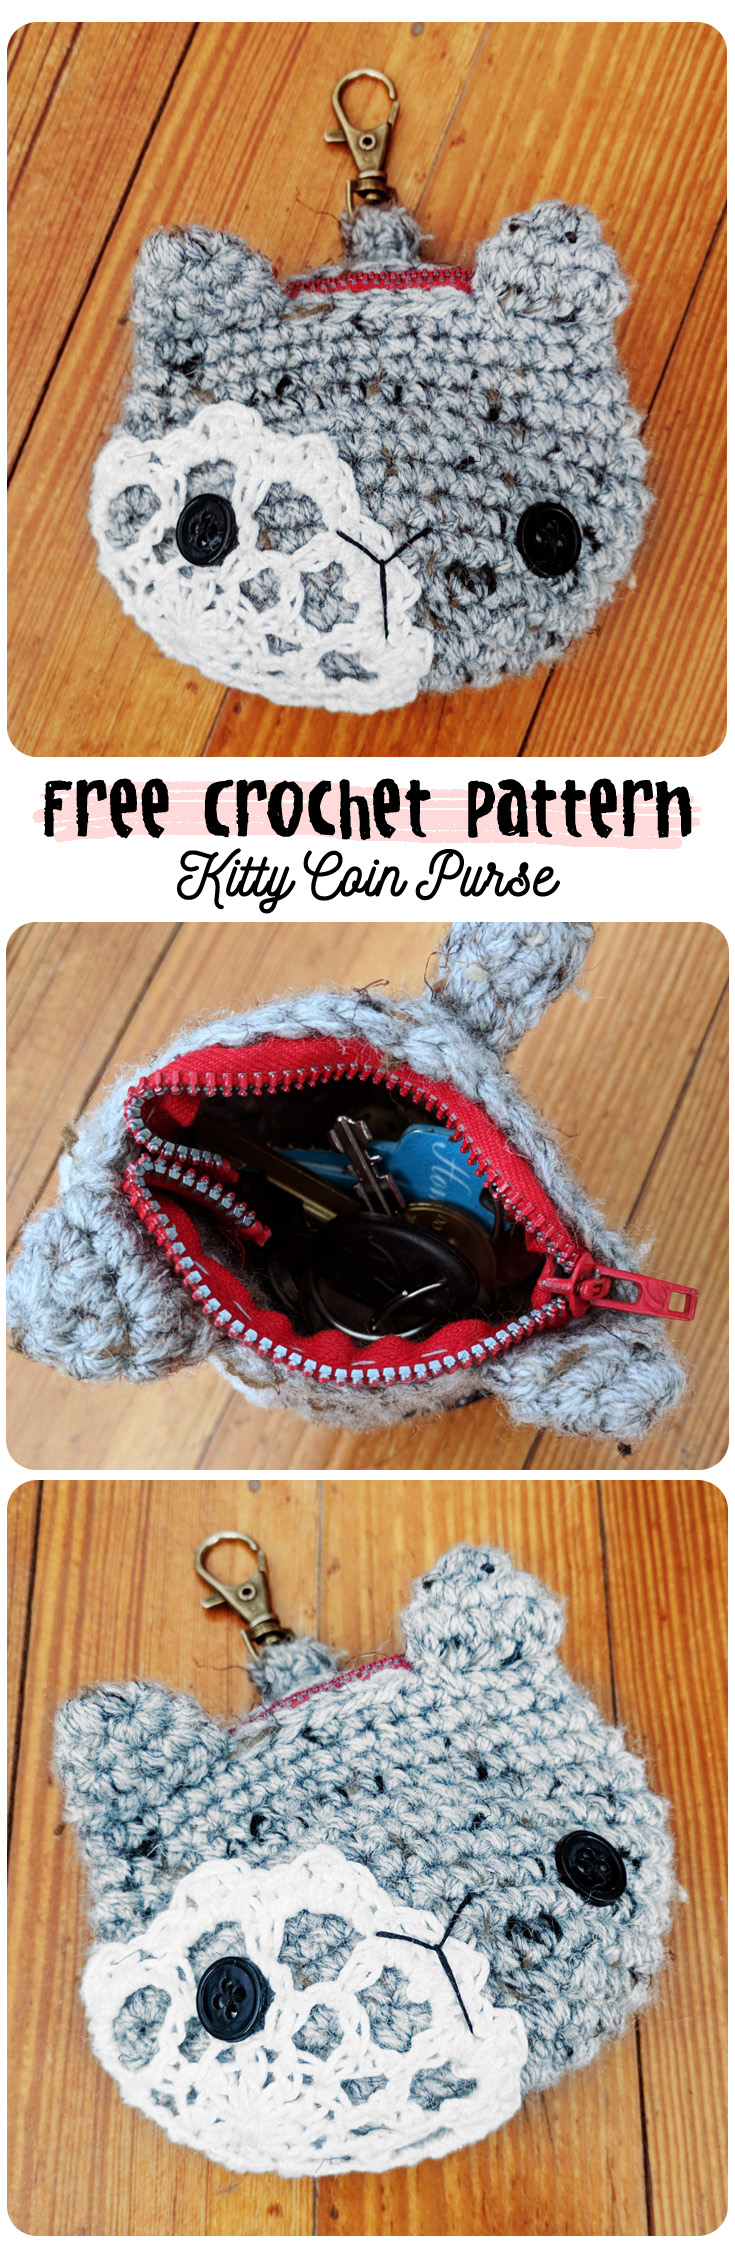 free-crochet-pattern-kitty-coin-purse (1).jpg